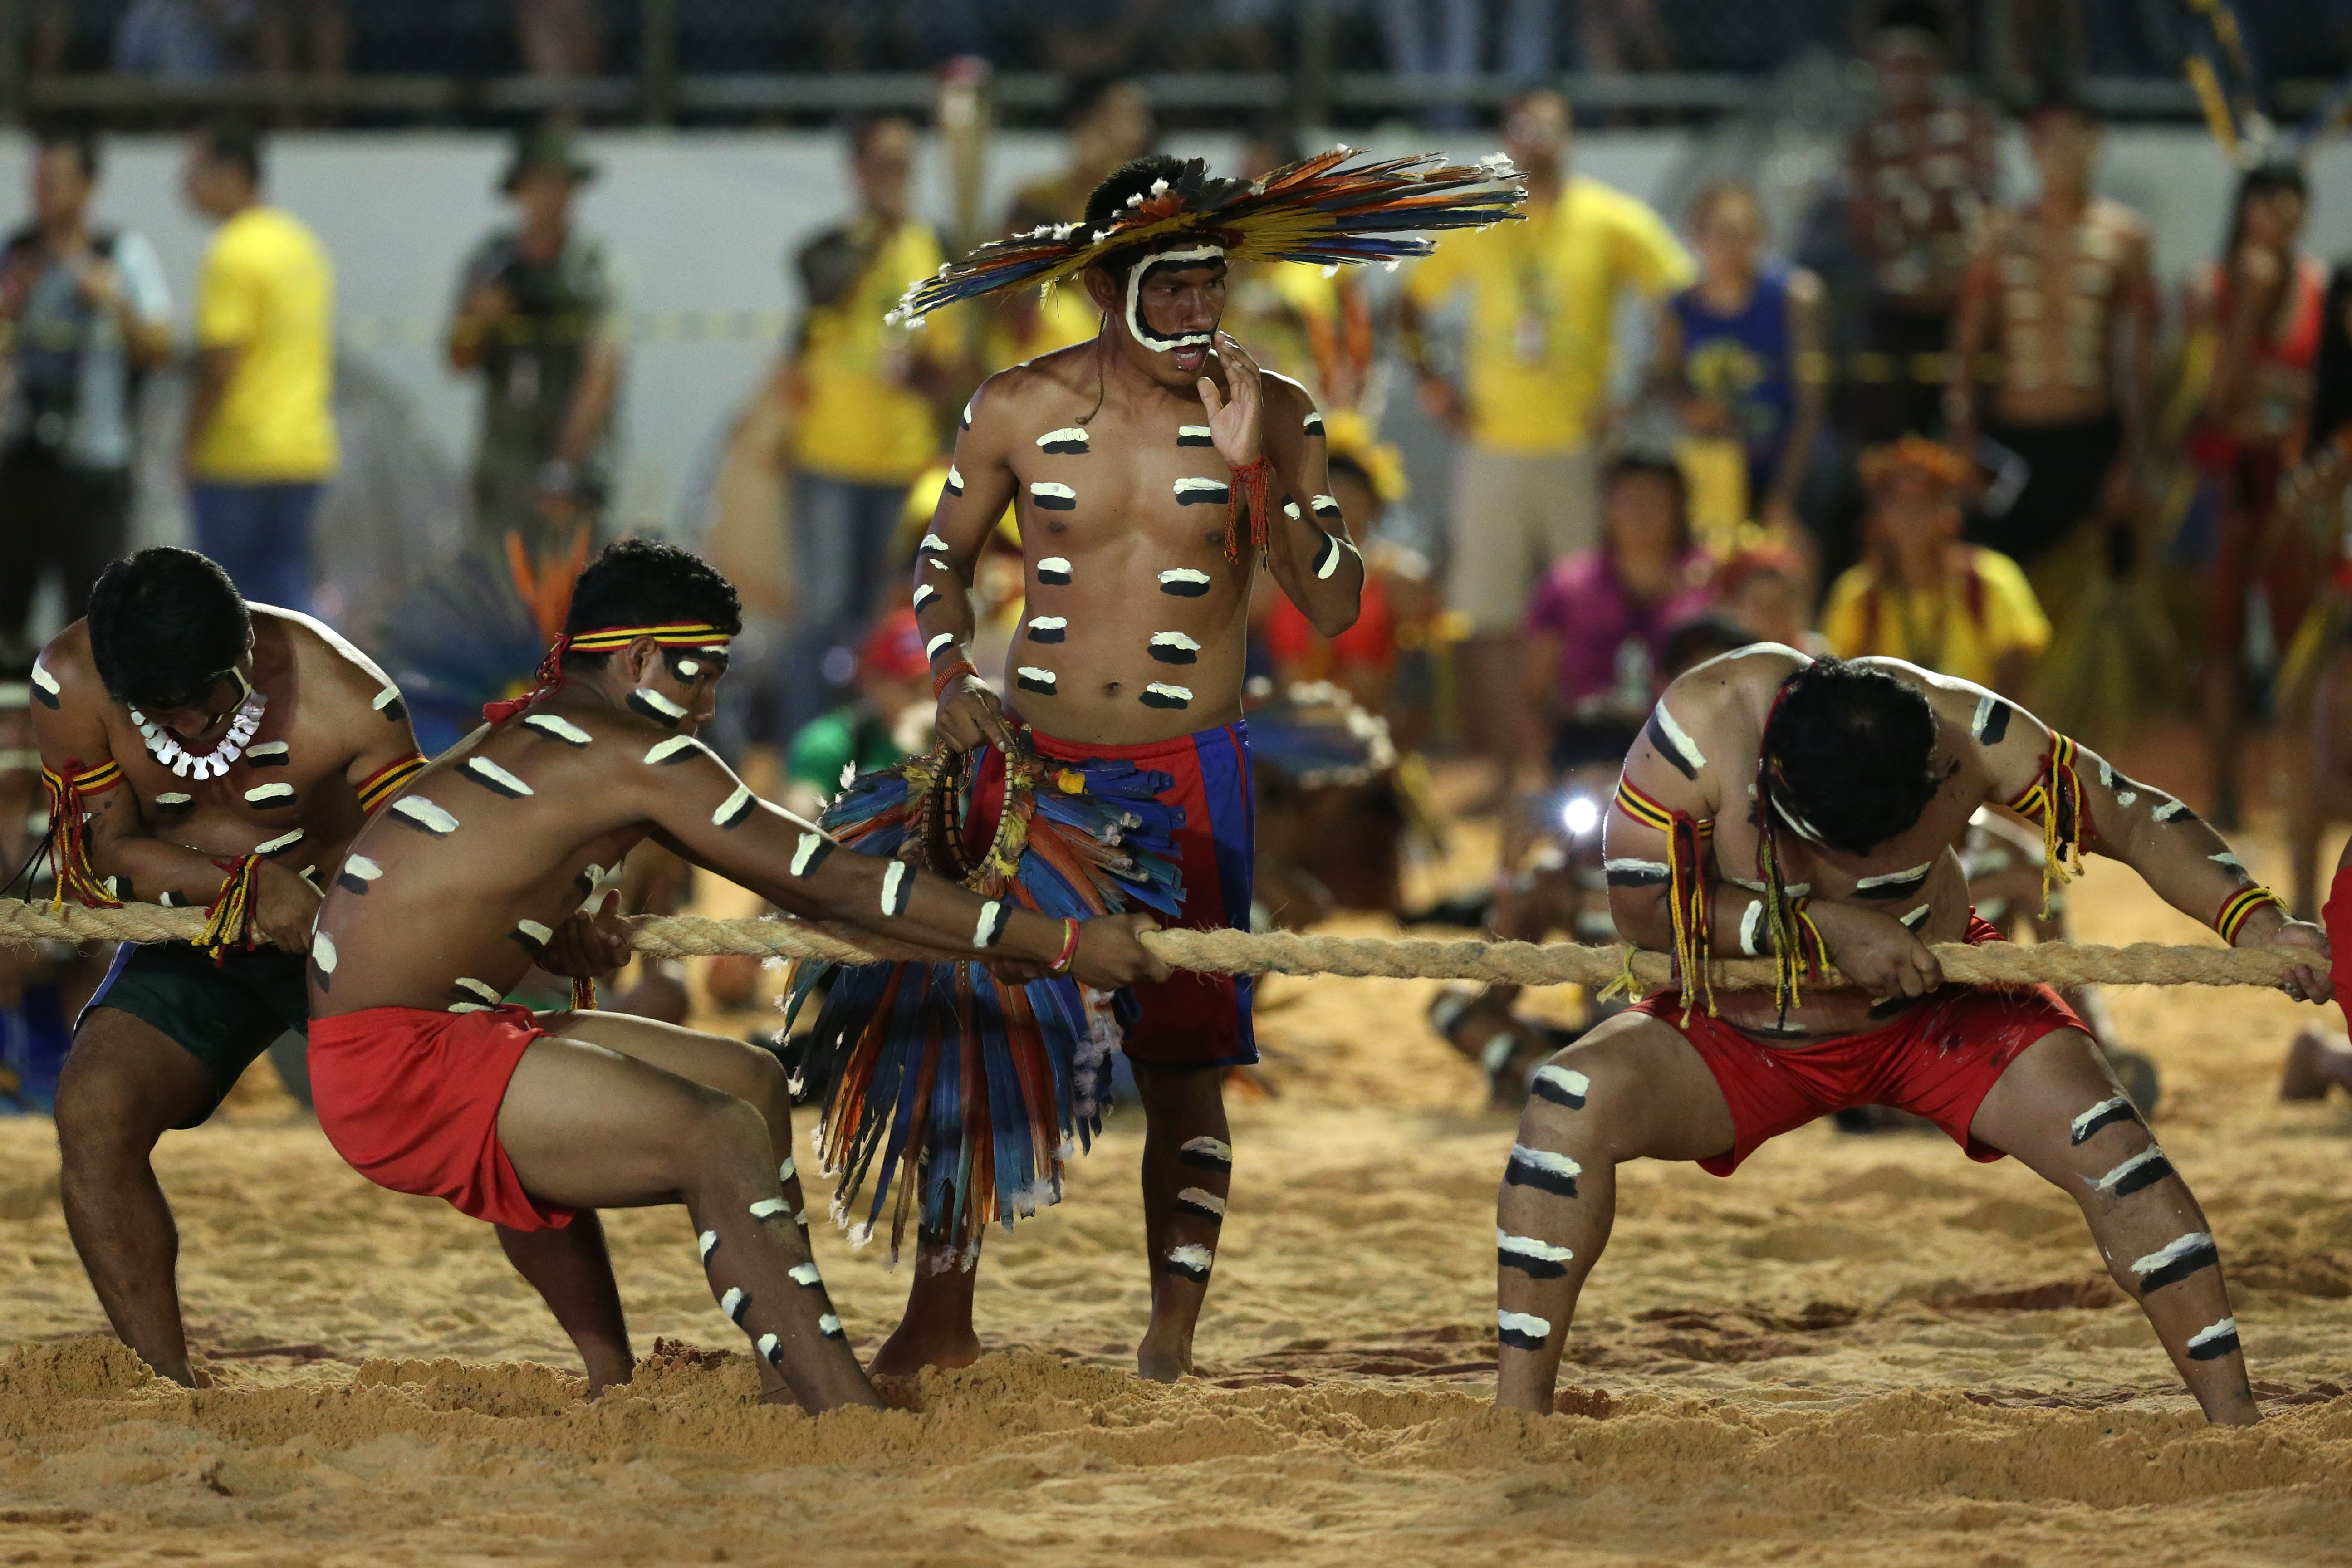 Brazil's Bororo Indigenous take part in the proof of the force cable during the final games of the World Indigenous Games, in Palmas, Brazil, Saturday, October 31, 2015. Photo: AP